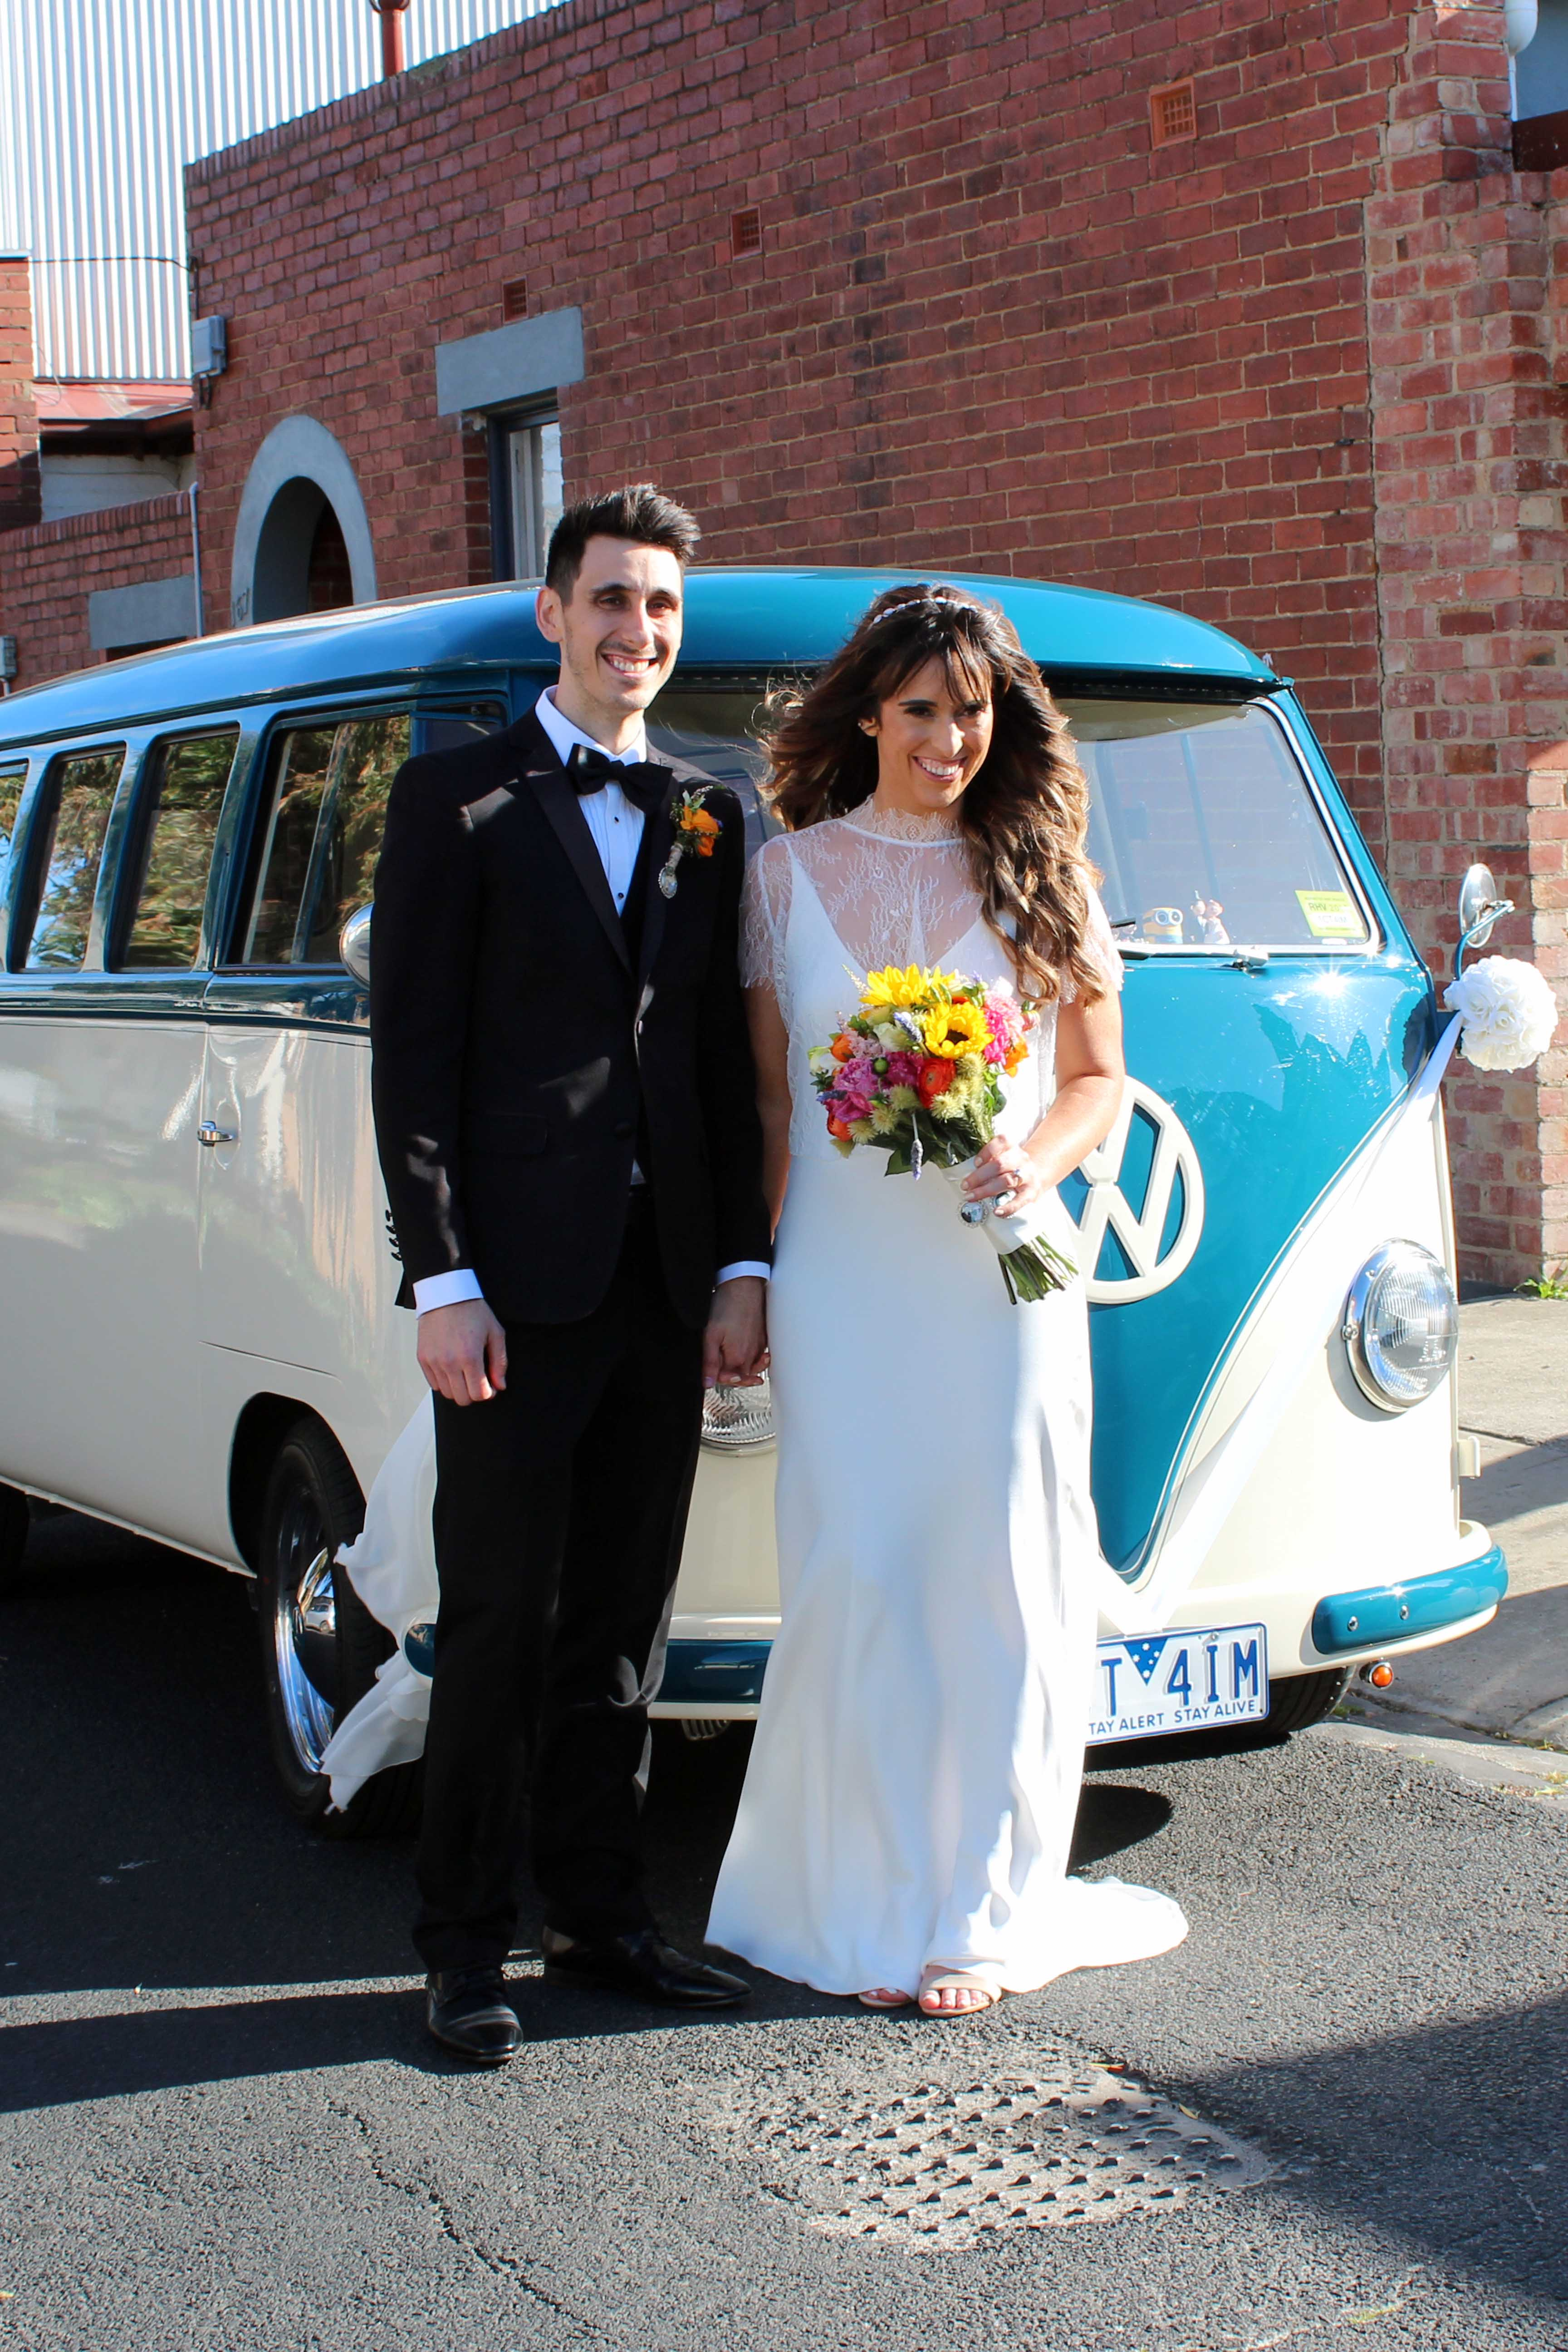 Kombi & Beetle Wedding Car Hire by Fisch & Co. - Brook & Nick (14)